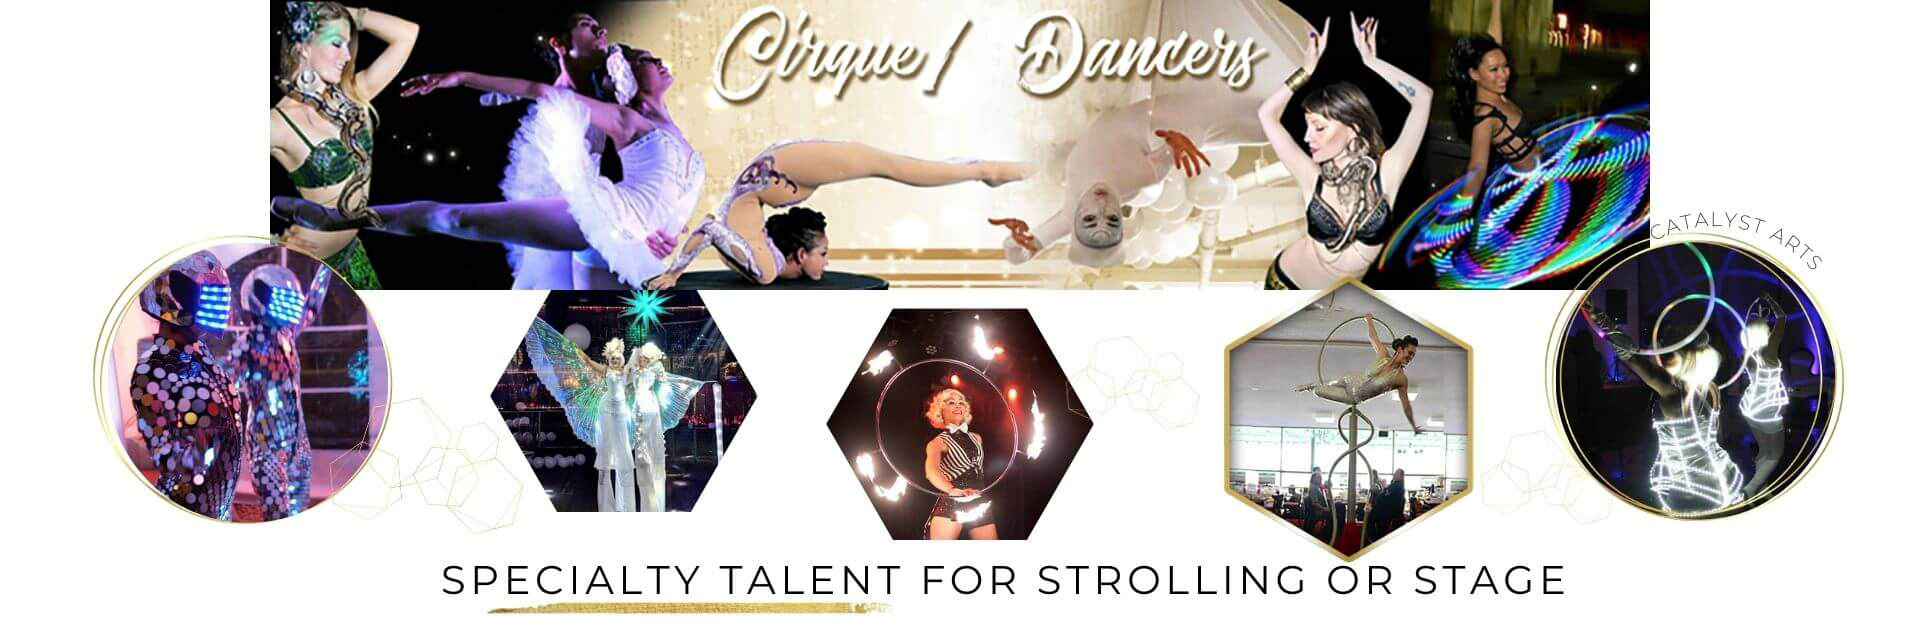 Cirque & Dance Specialty Talent booking for parties by Catalyst Arts